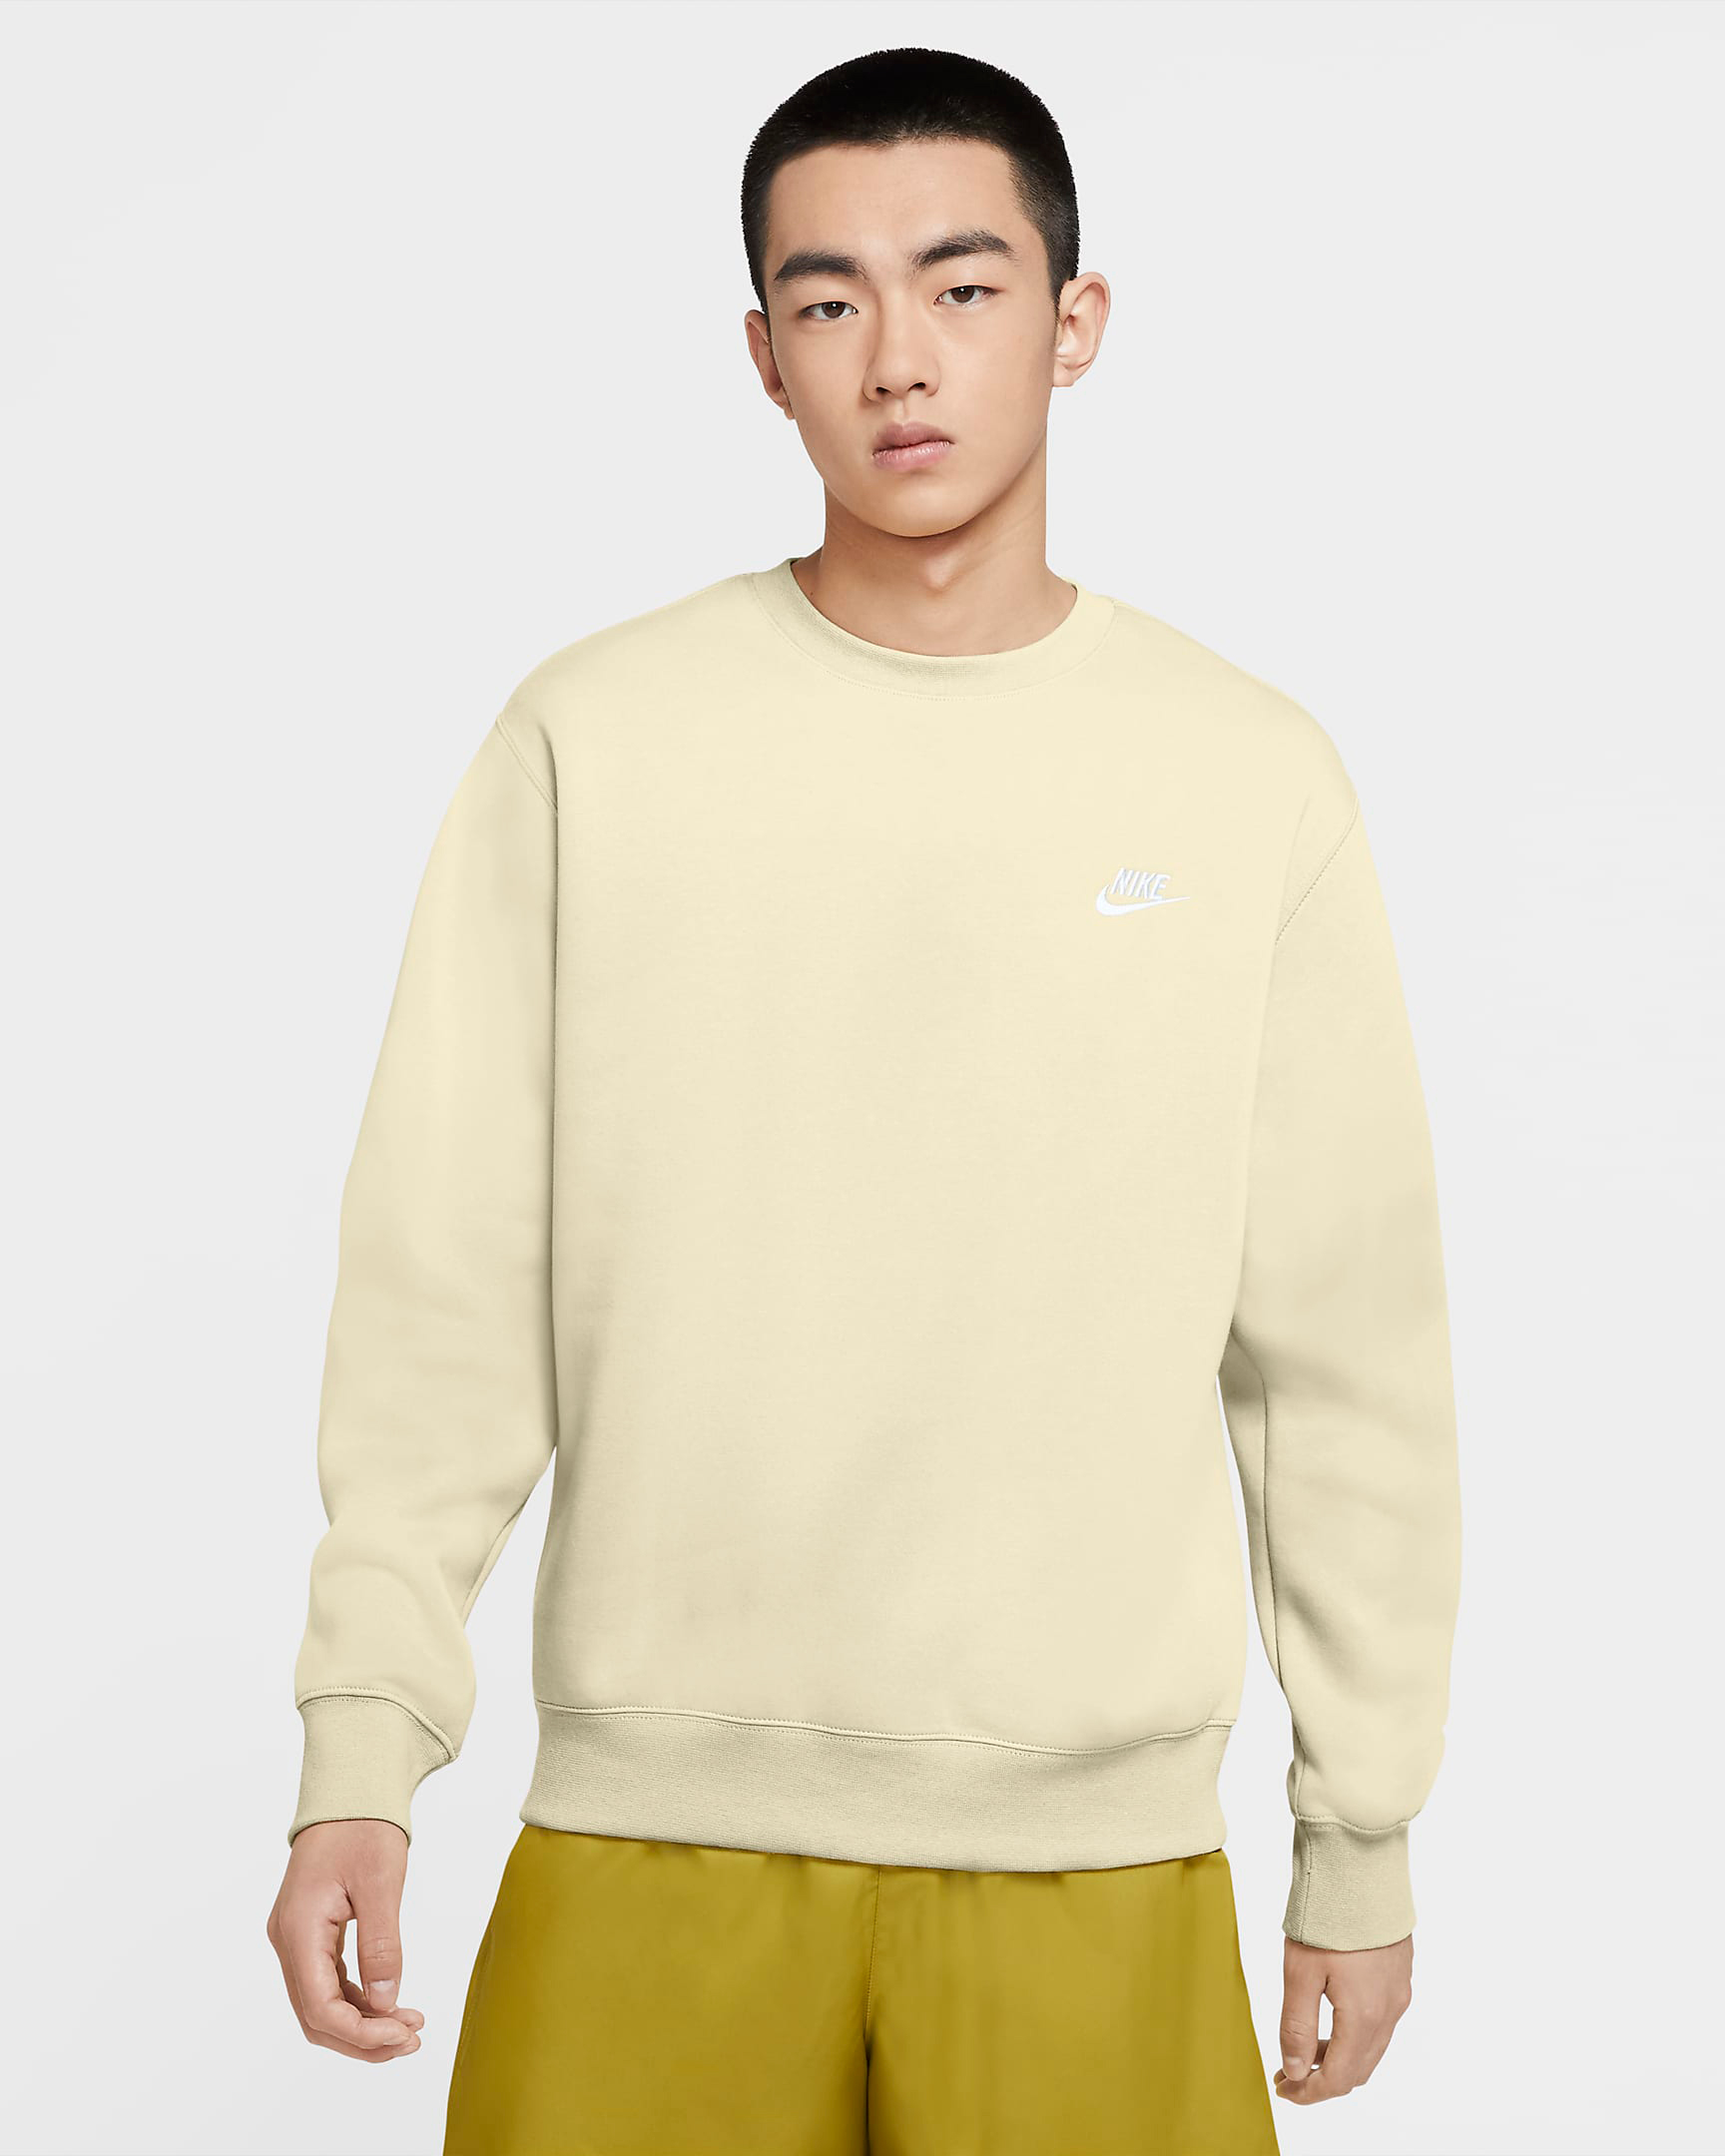 nike-air-force-1-popcorn-coconut-milk-sweatshirt